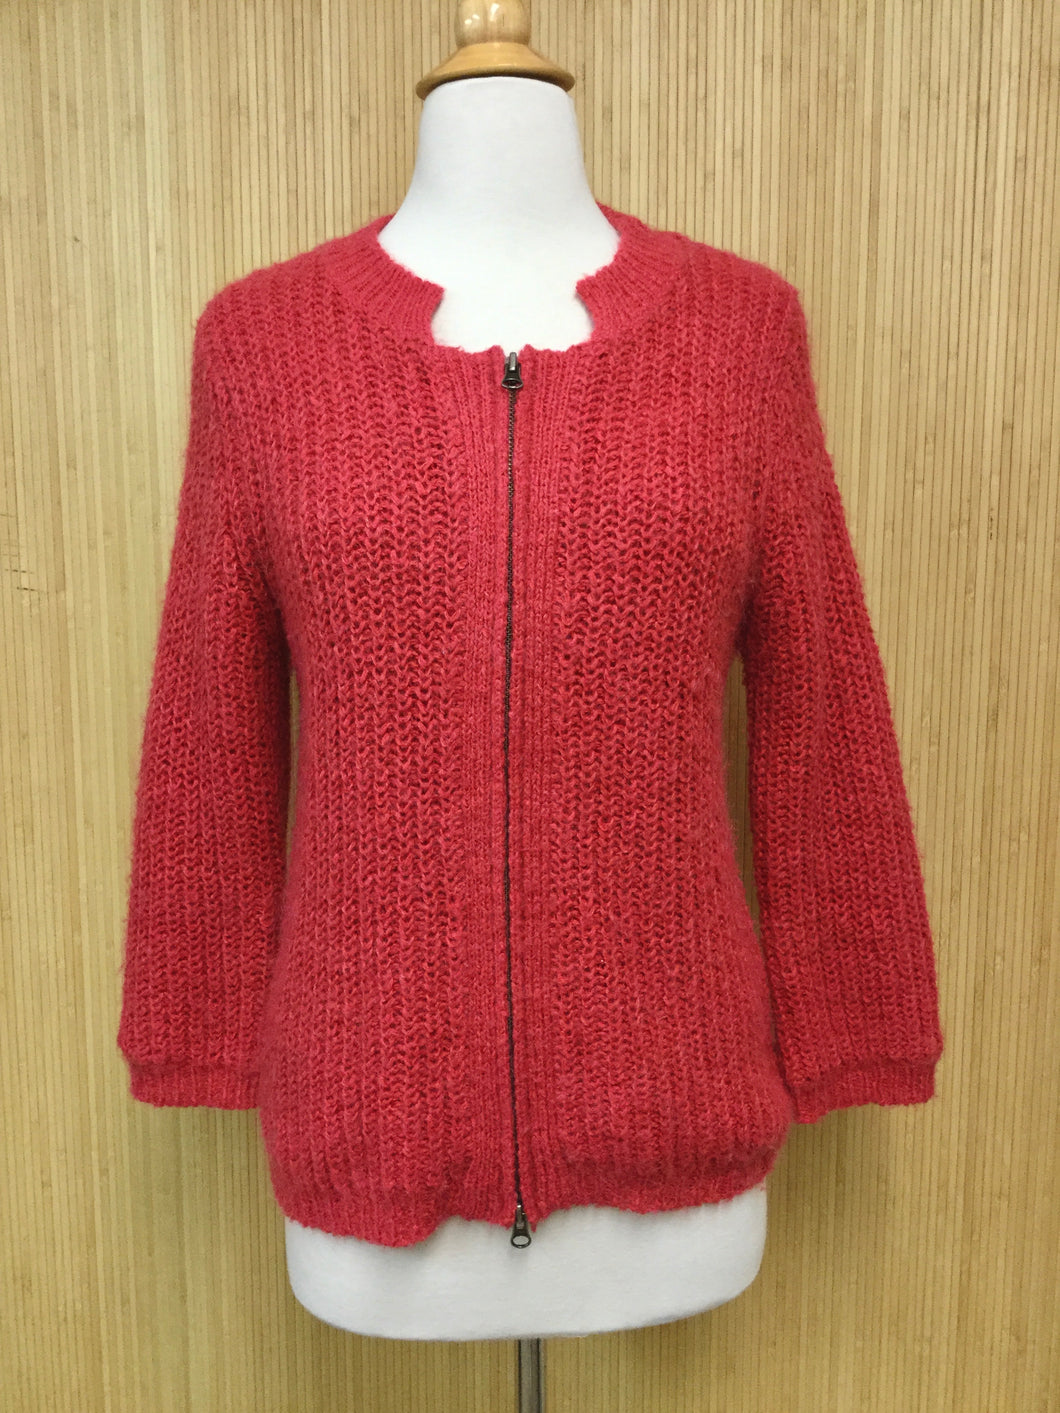 Cabi Zip-Up Sweater (M)